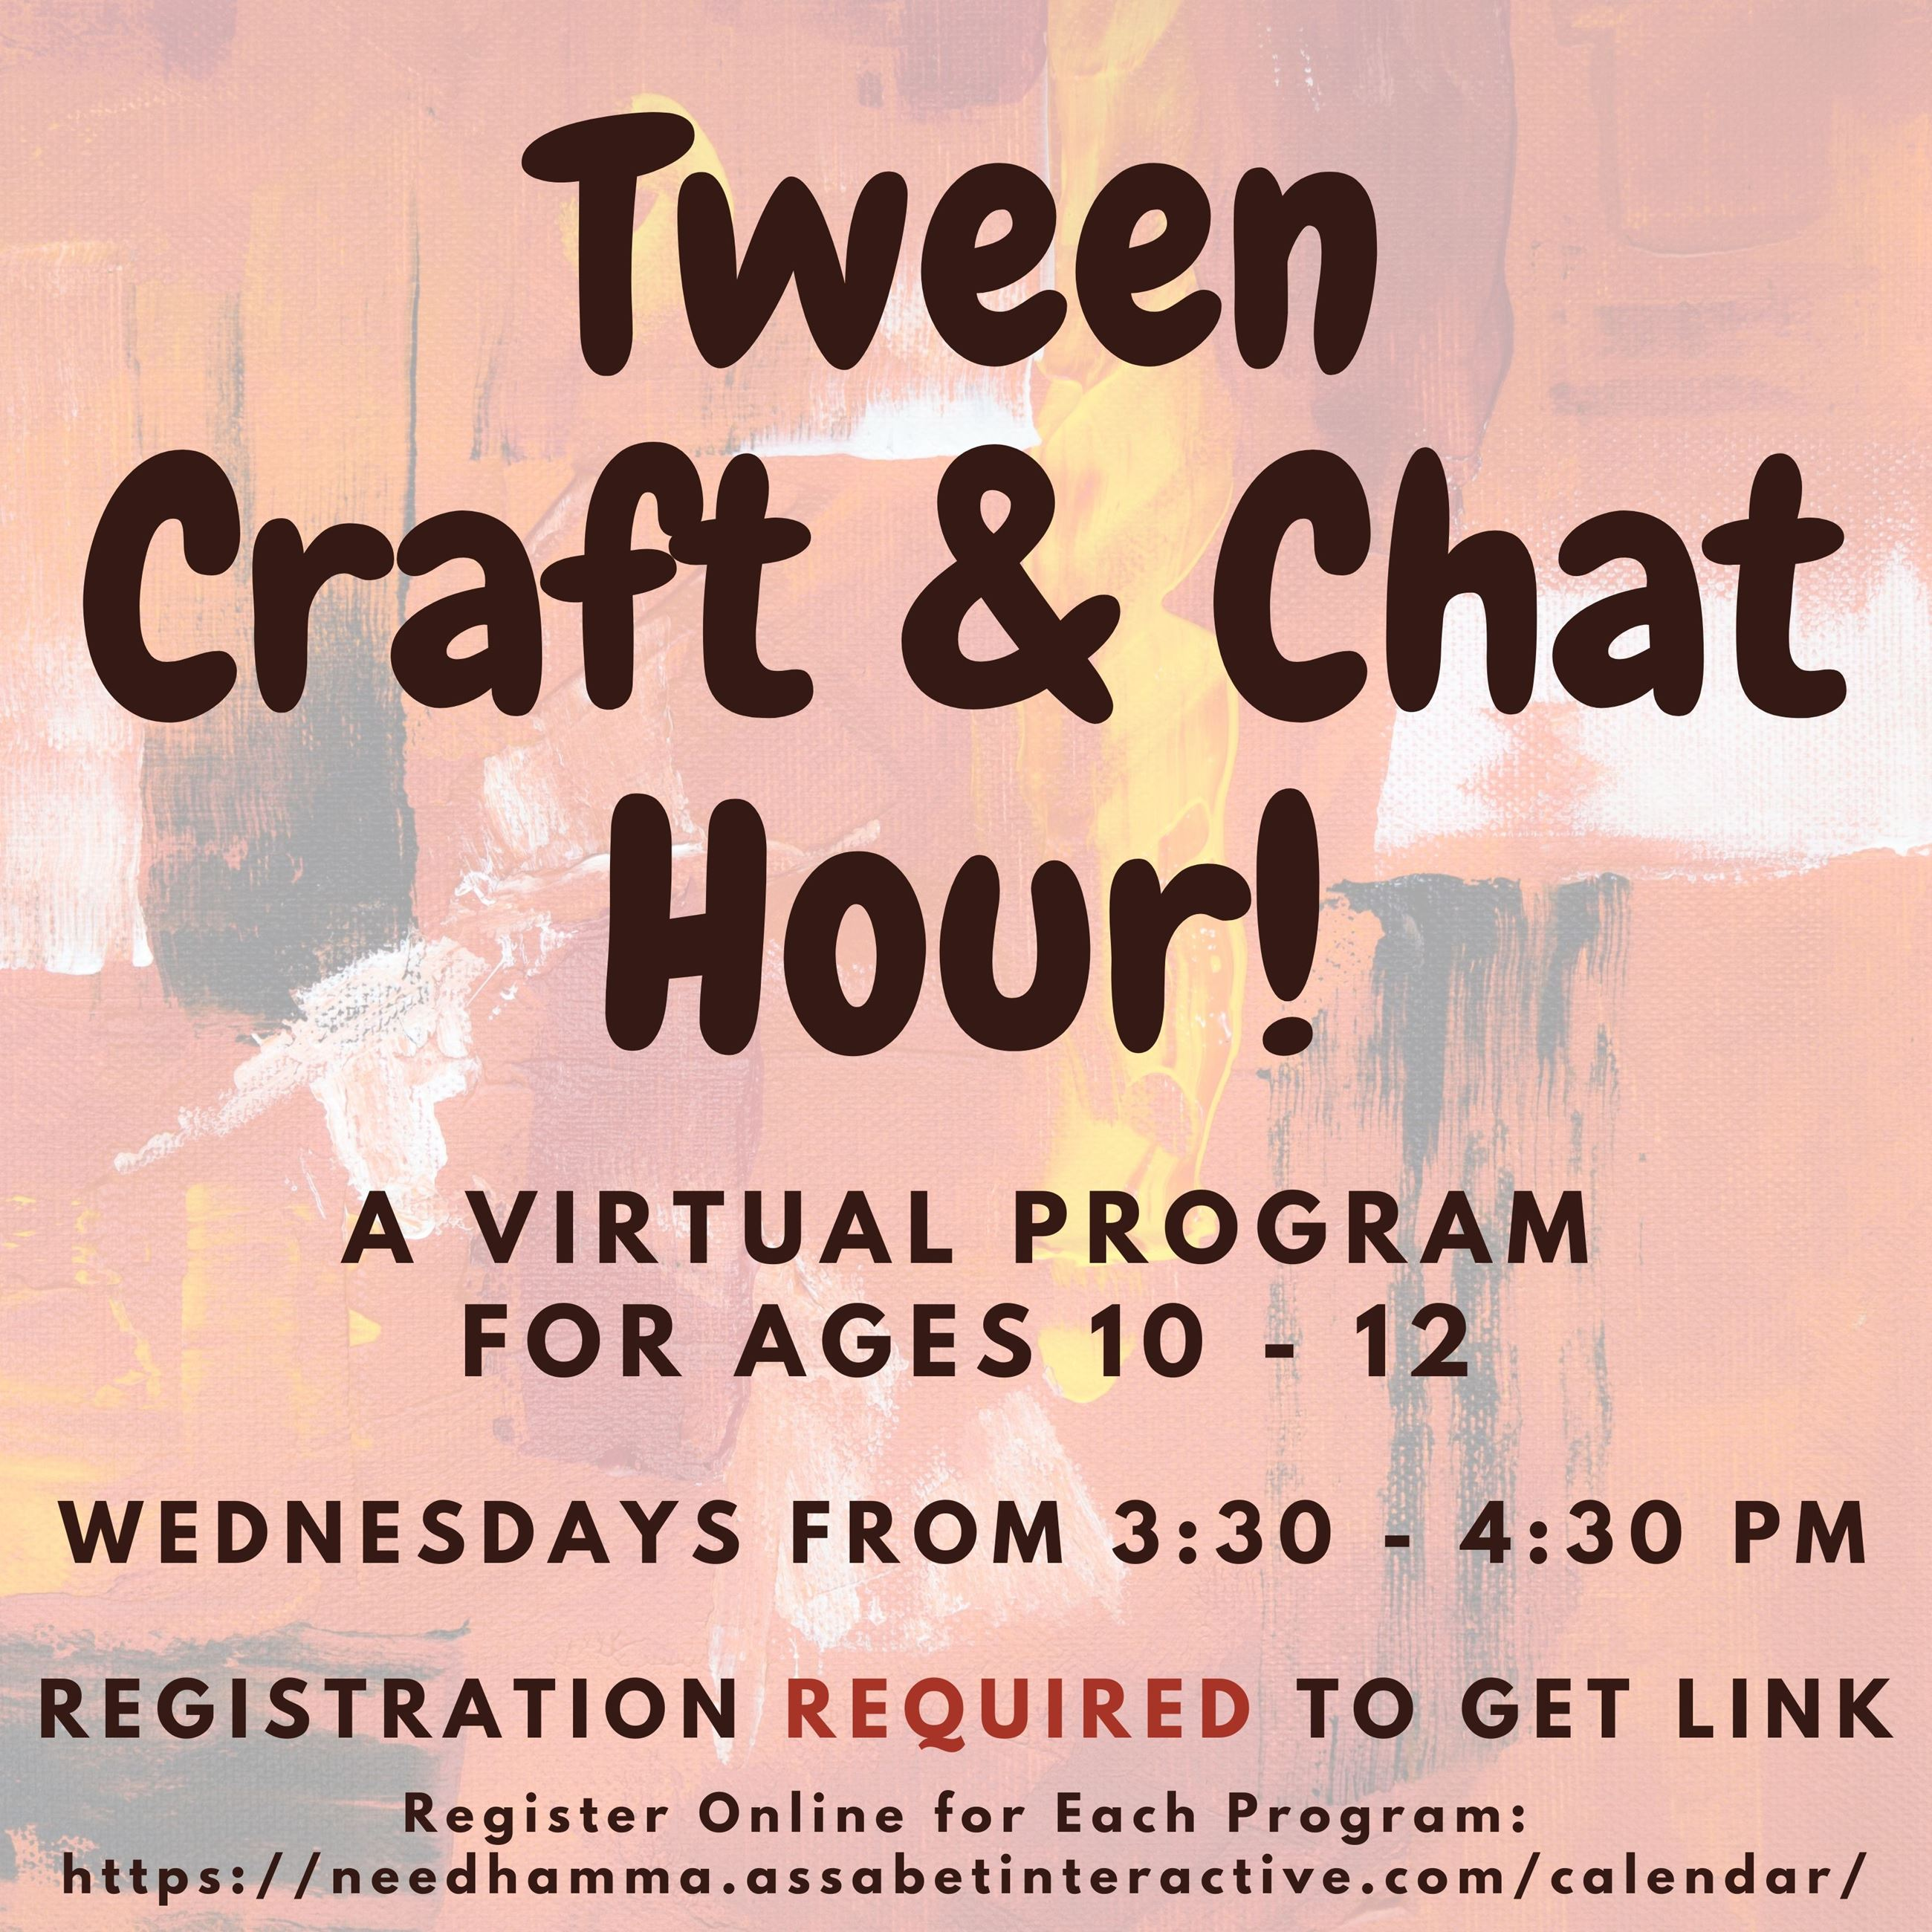 tween craft and chat sessions for ages 10-12 on wednesdays at 3:30 pm